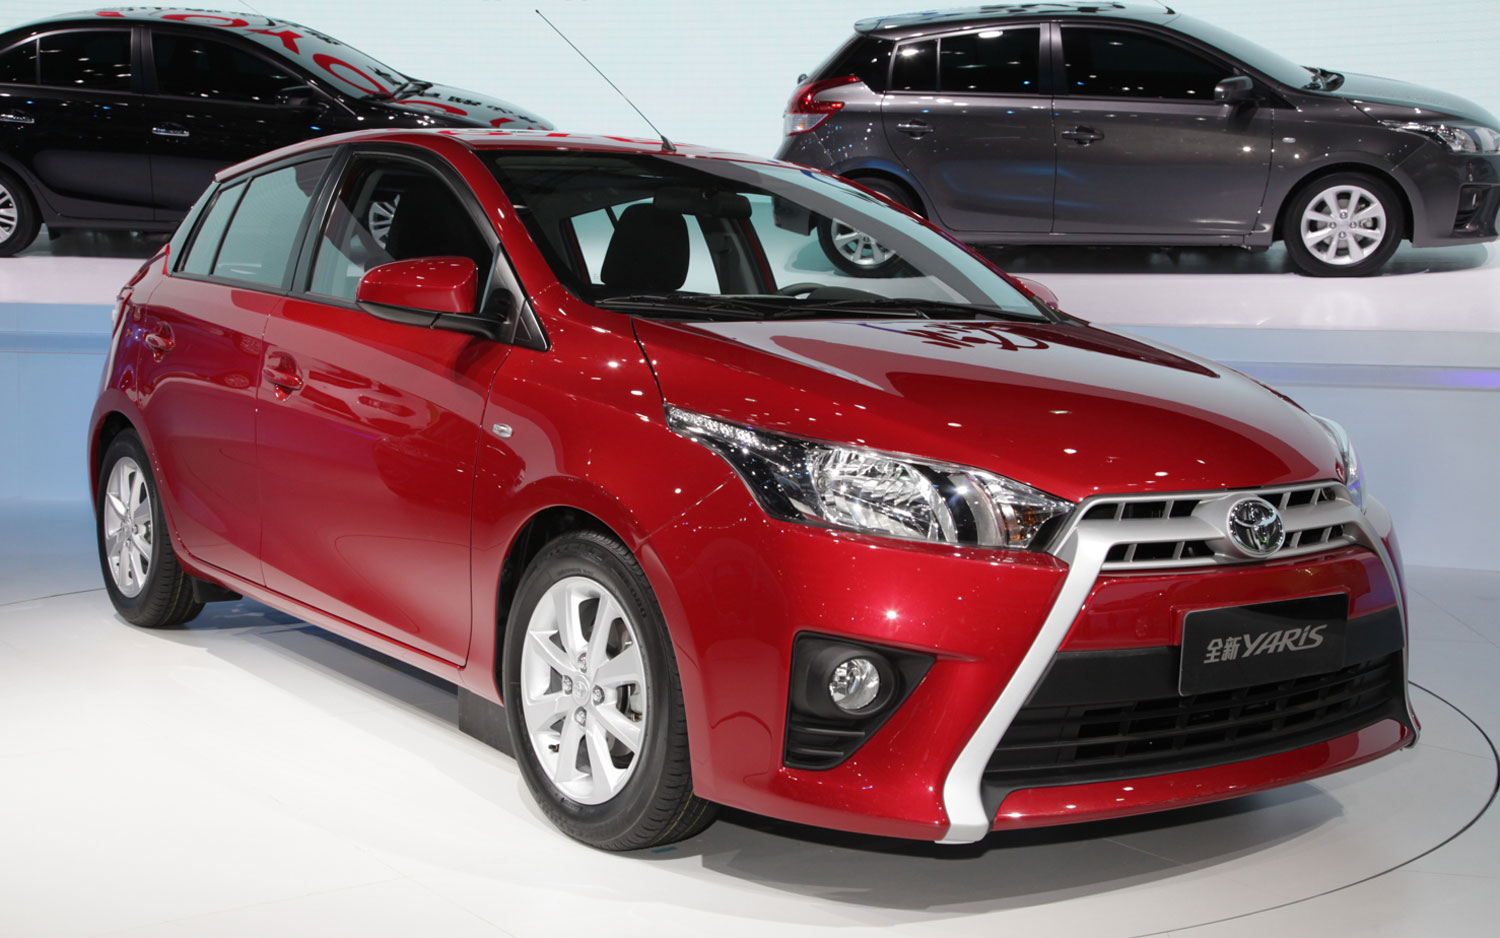 ... Concept Car Release Date : 2014 Toyota Yaris Changes Release Date